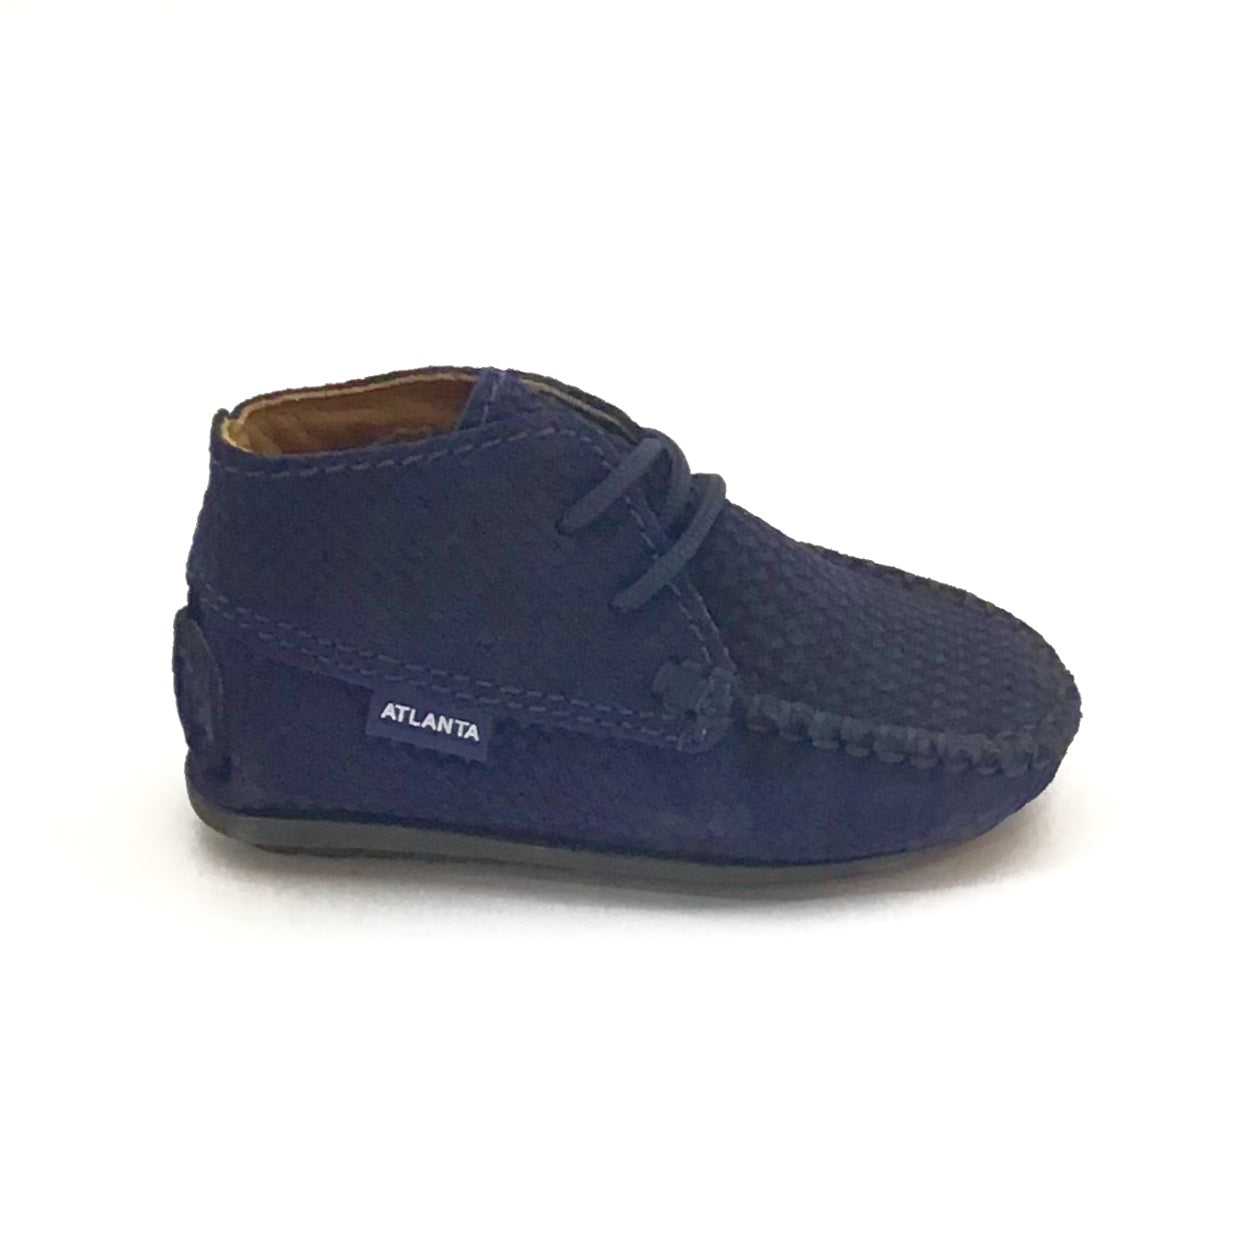 Atlanta Mocassin Blue Suede Lace Up Mocassin